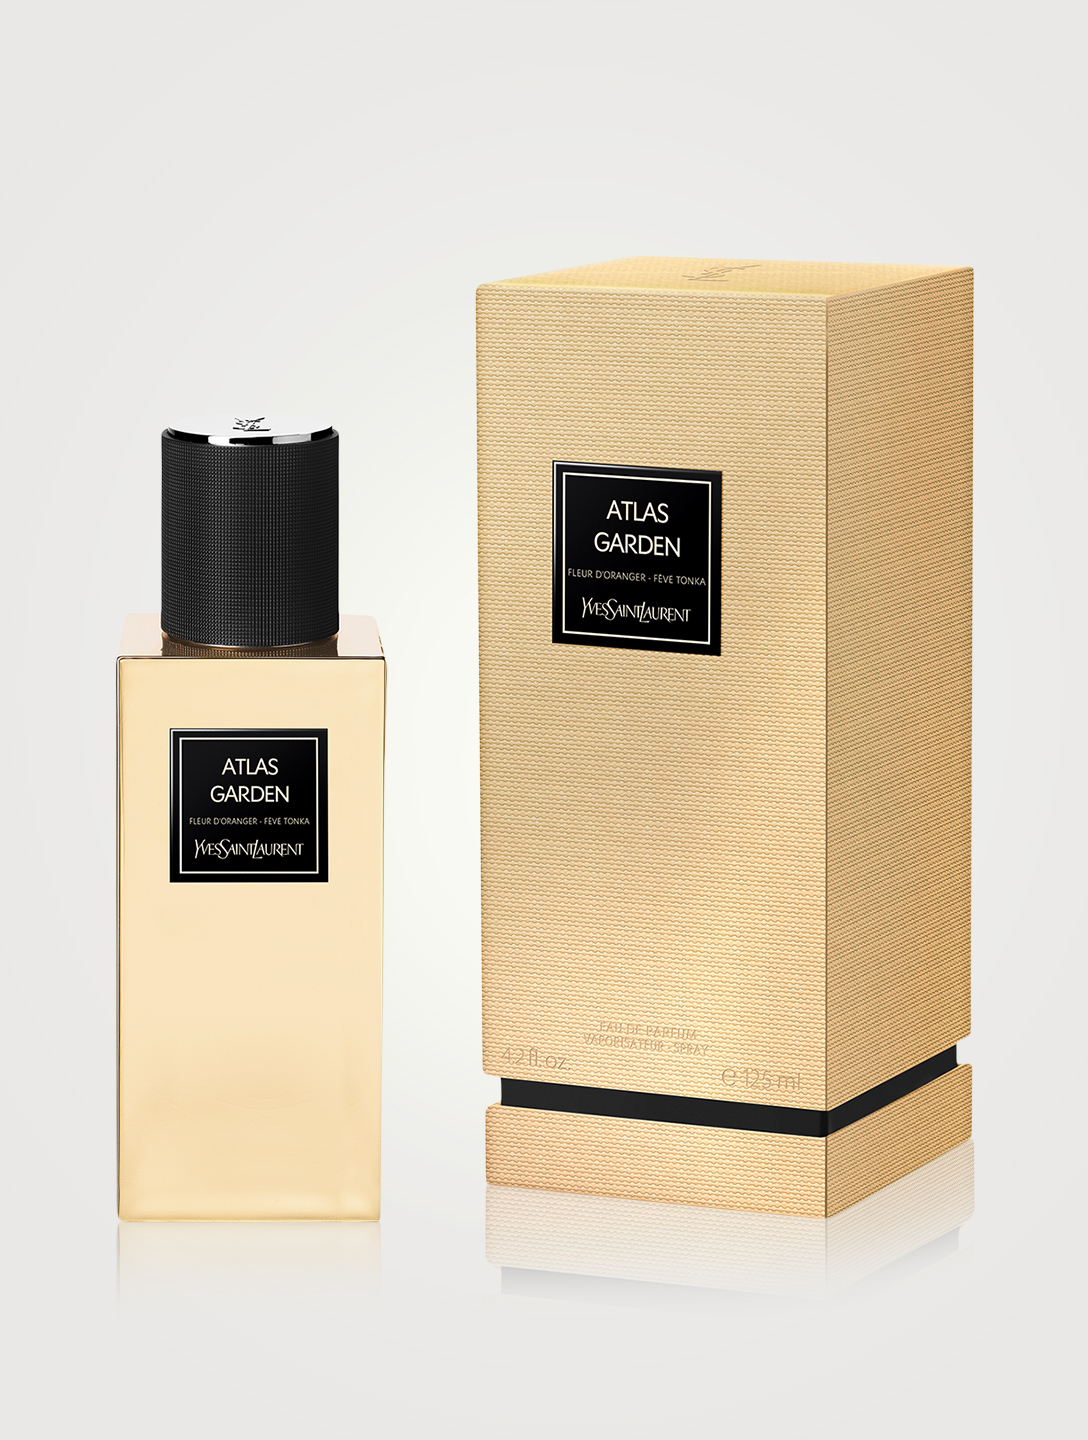 YVES SAINT LAURENT Le Vestaire Des Parfums Atlas Garden Eau de Parfum Beauty